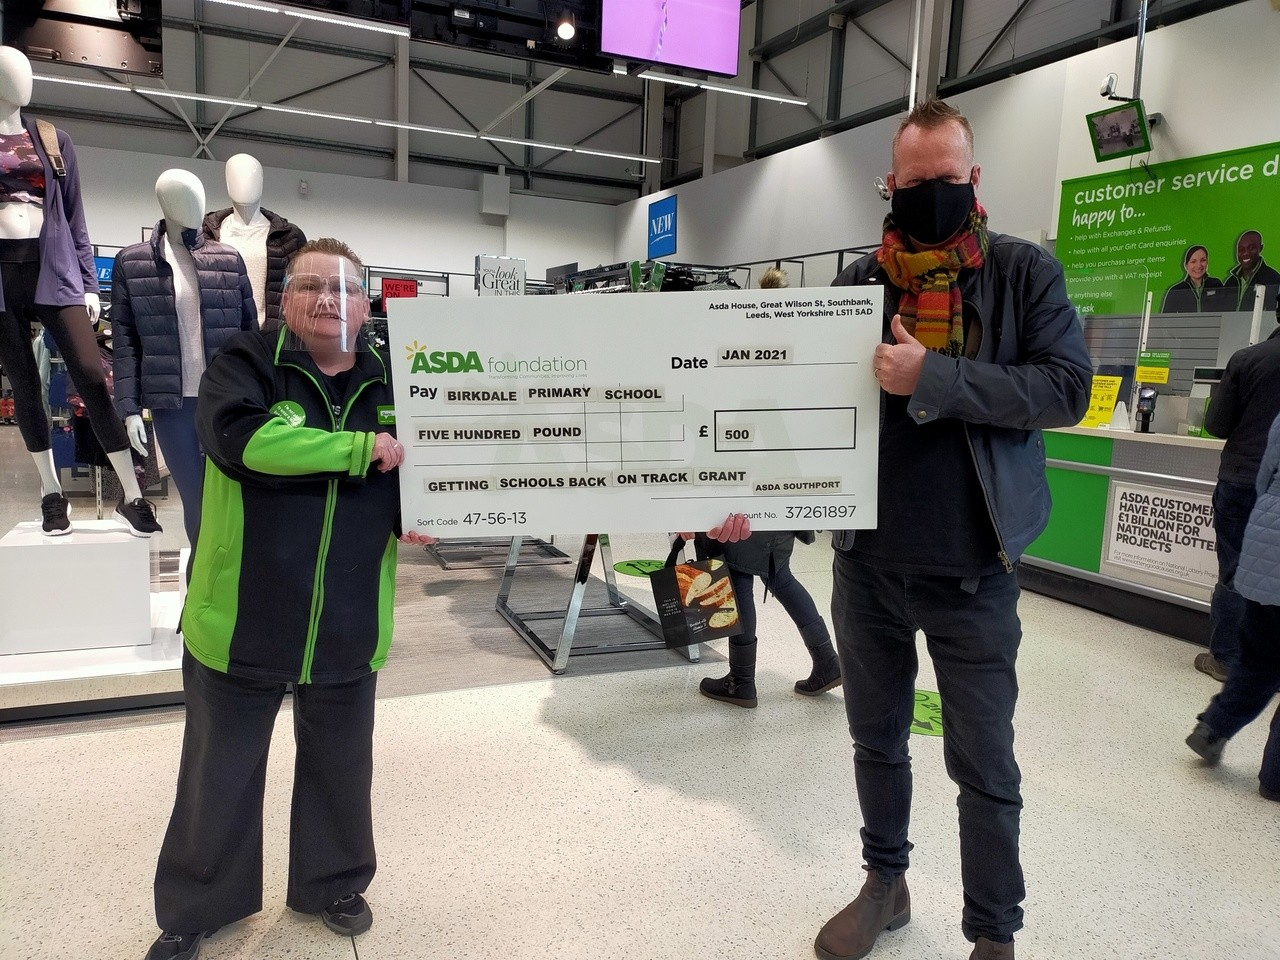 Birkdale Primary School grant | Asda Southport